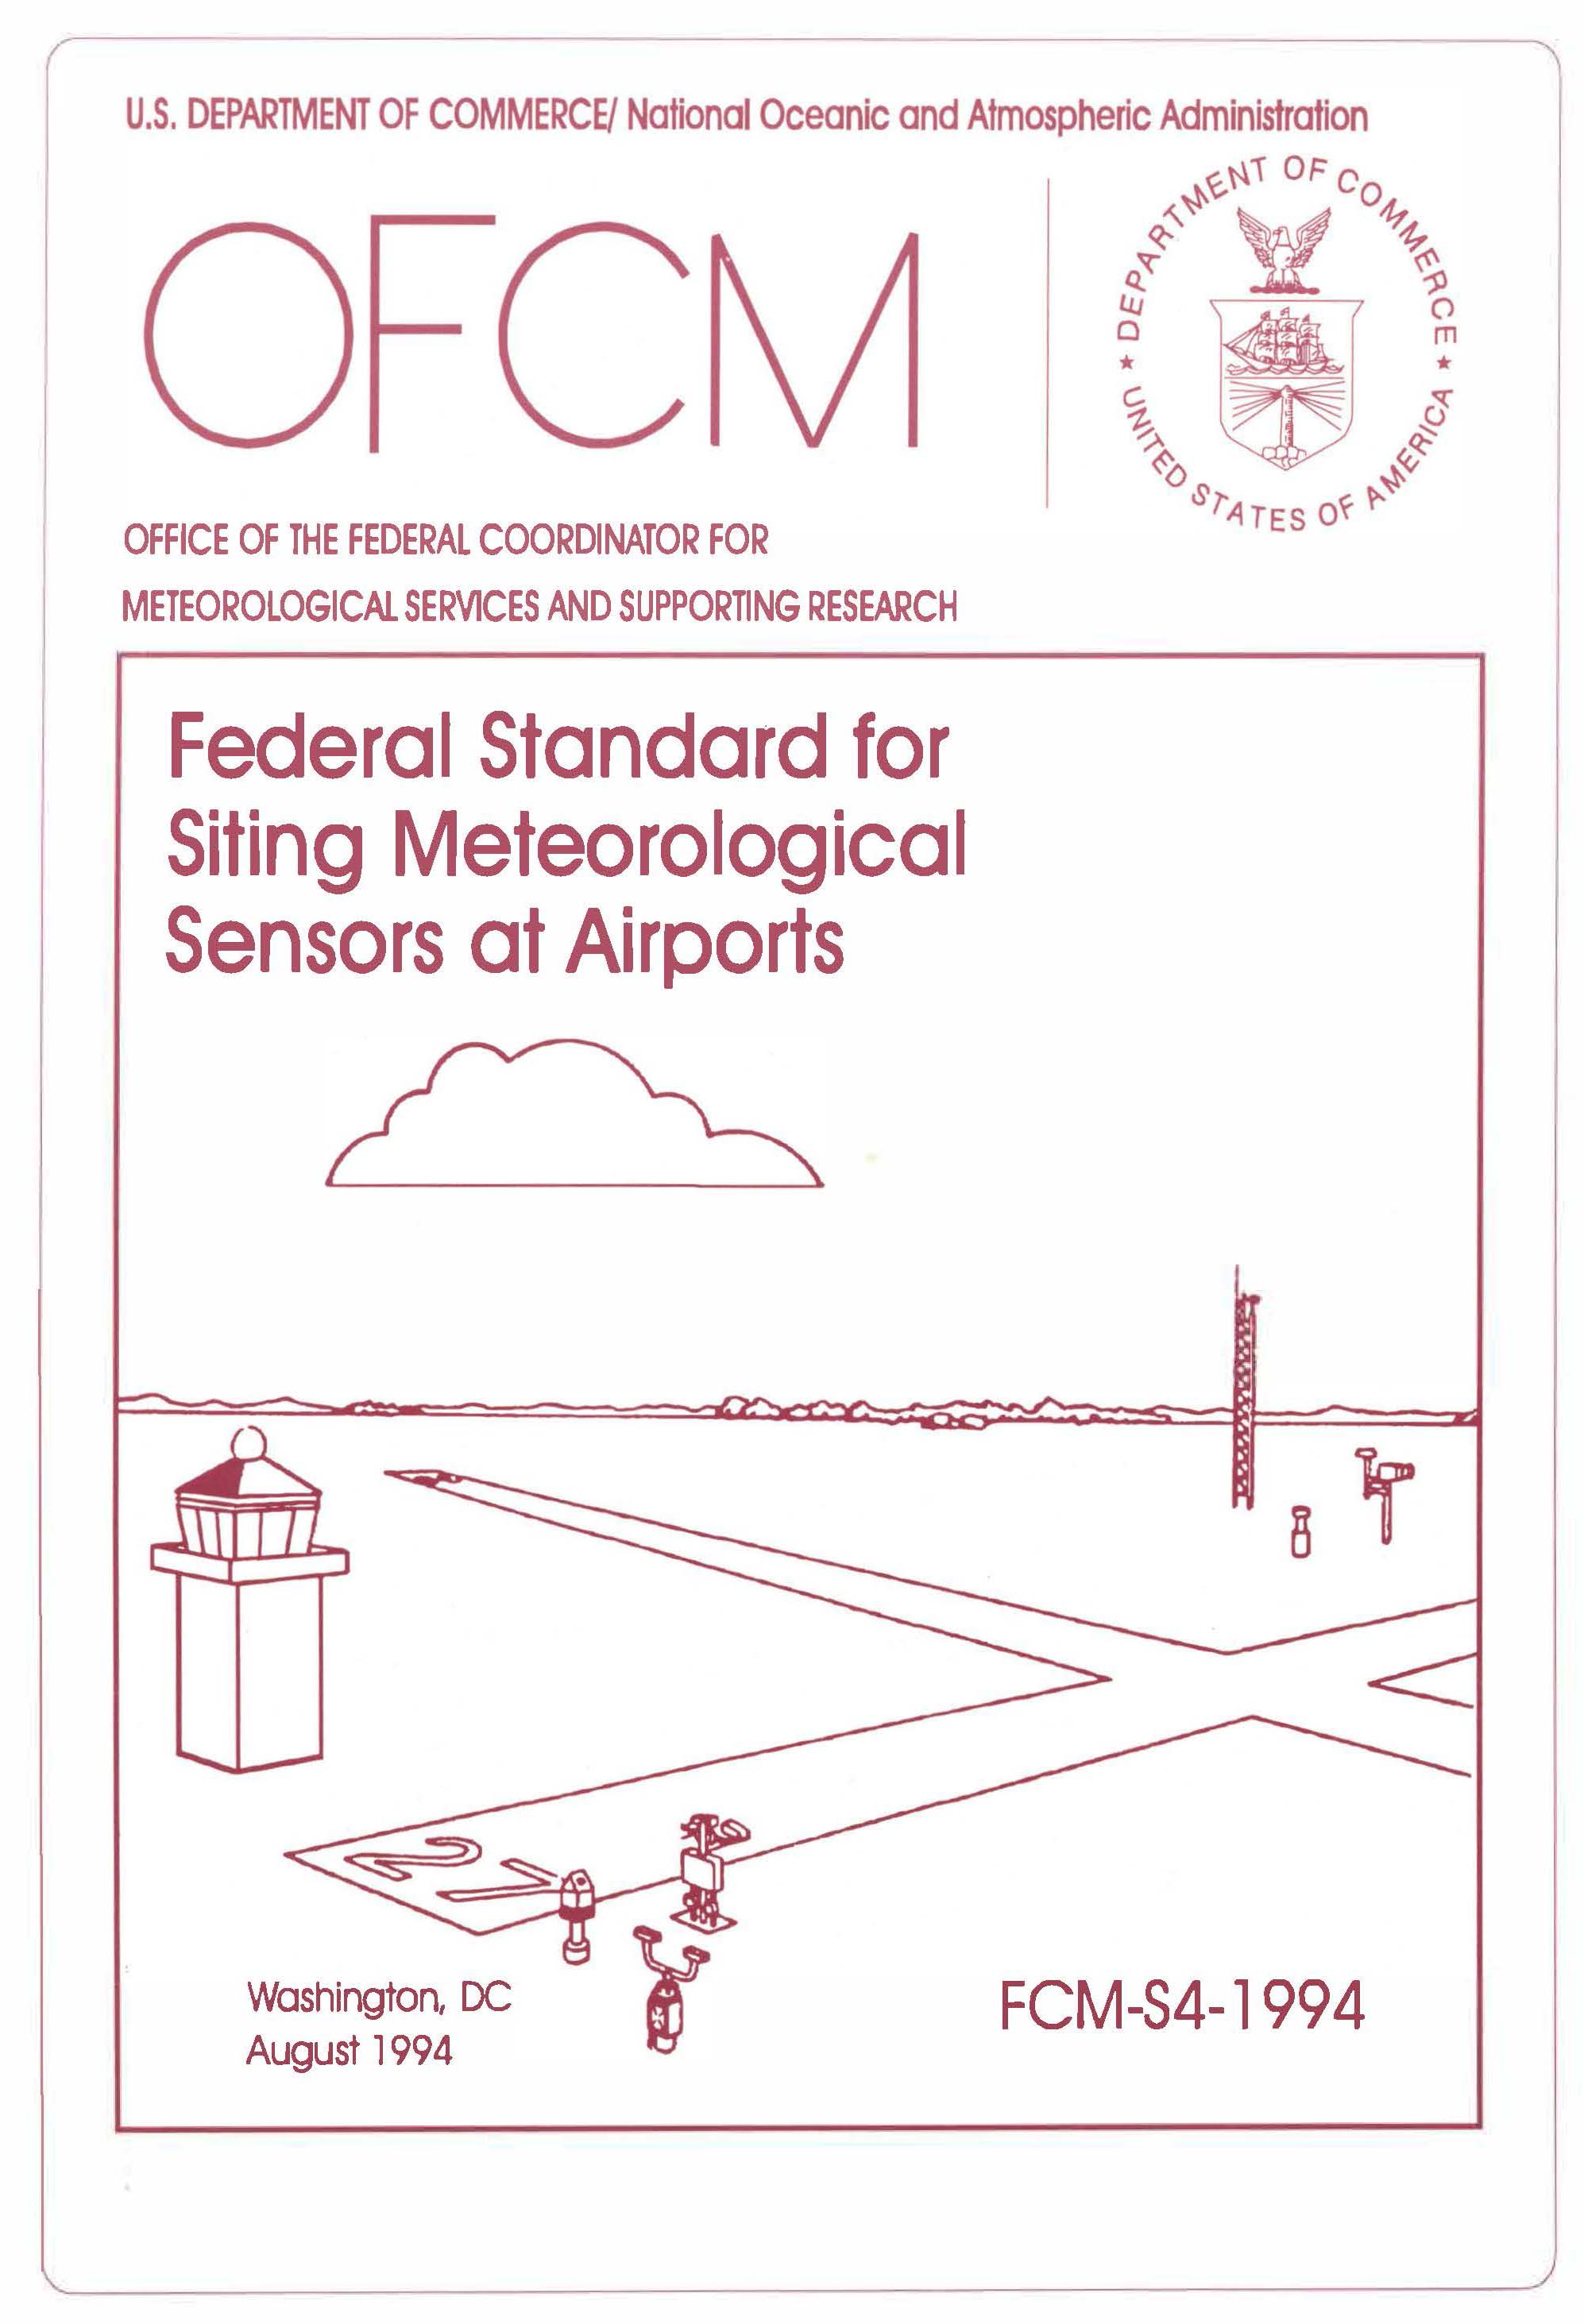 Image of the front cover of the Federal Standard for Siting Meteorological Sensors at Airports